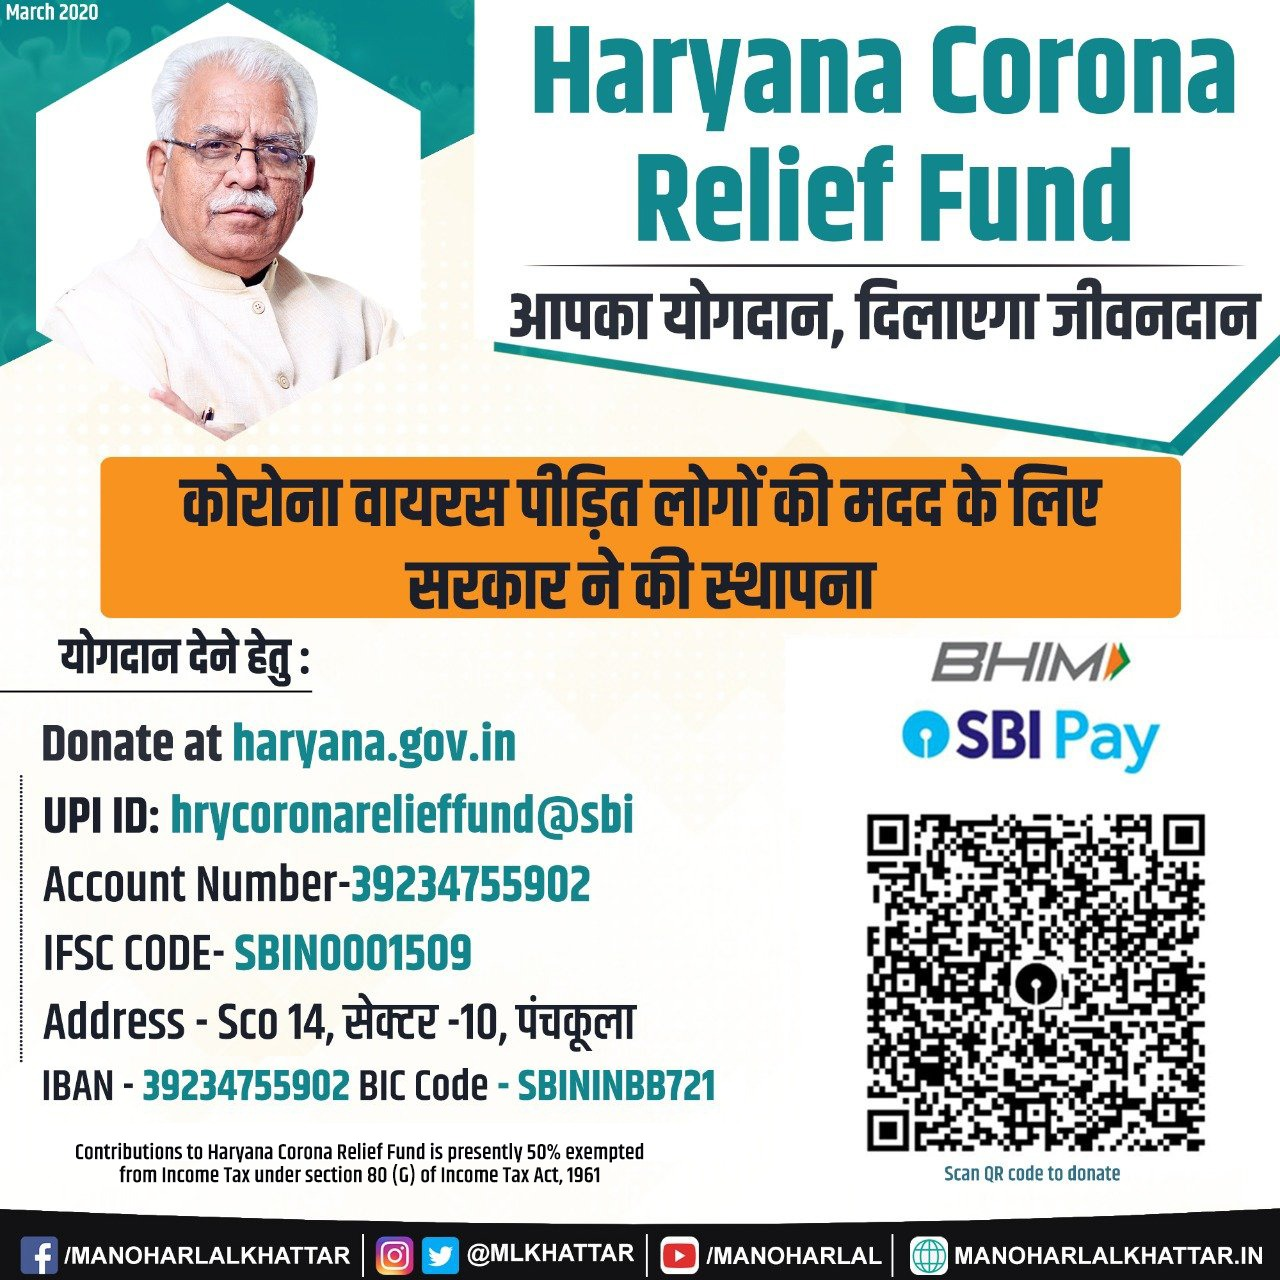 Click hare to pay for Haryana Corona Relief Fund